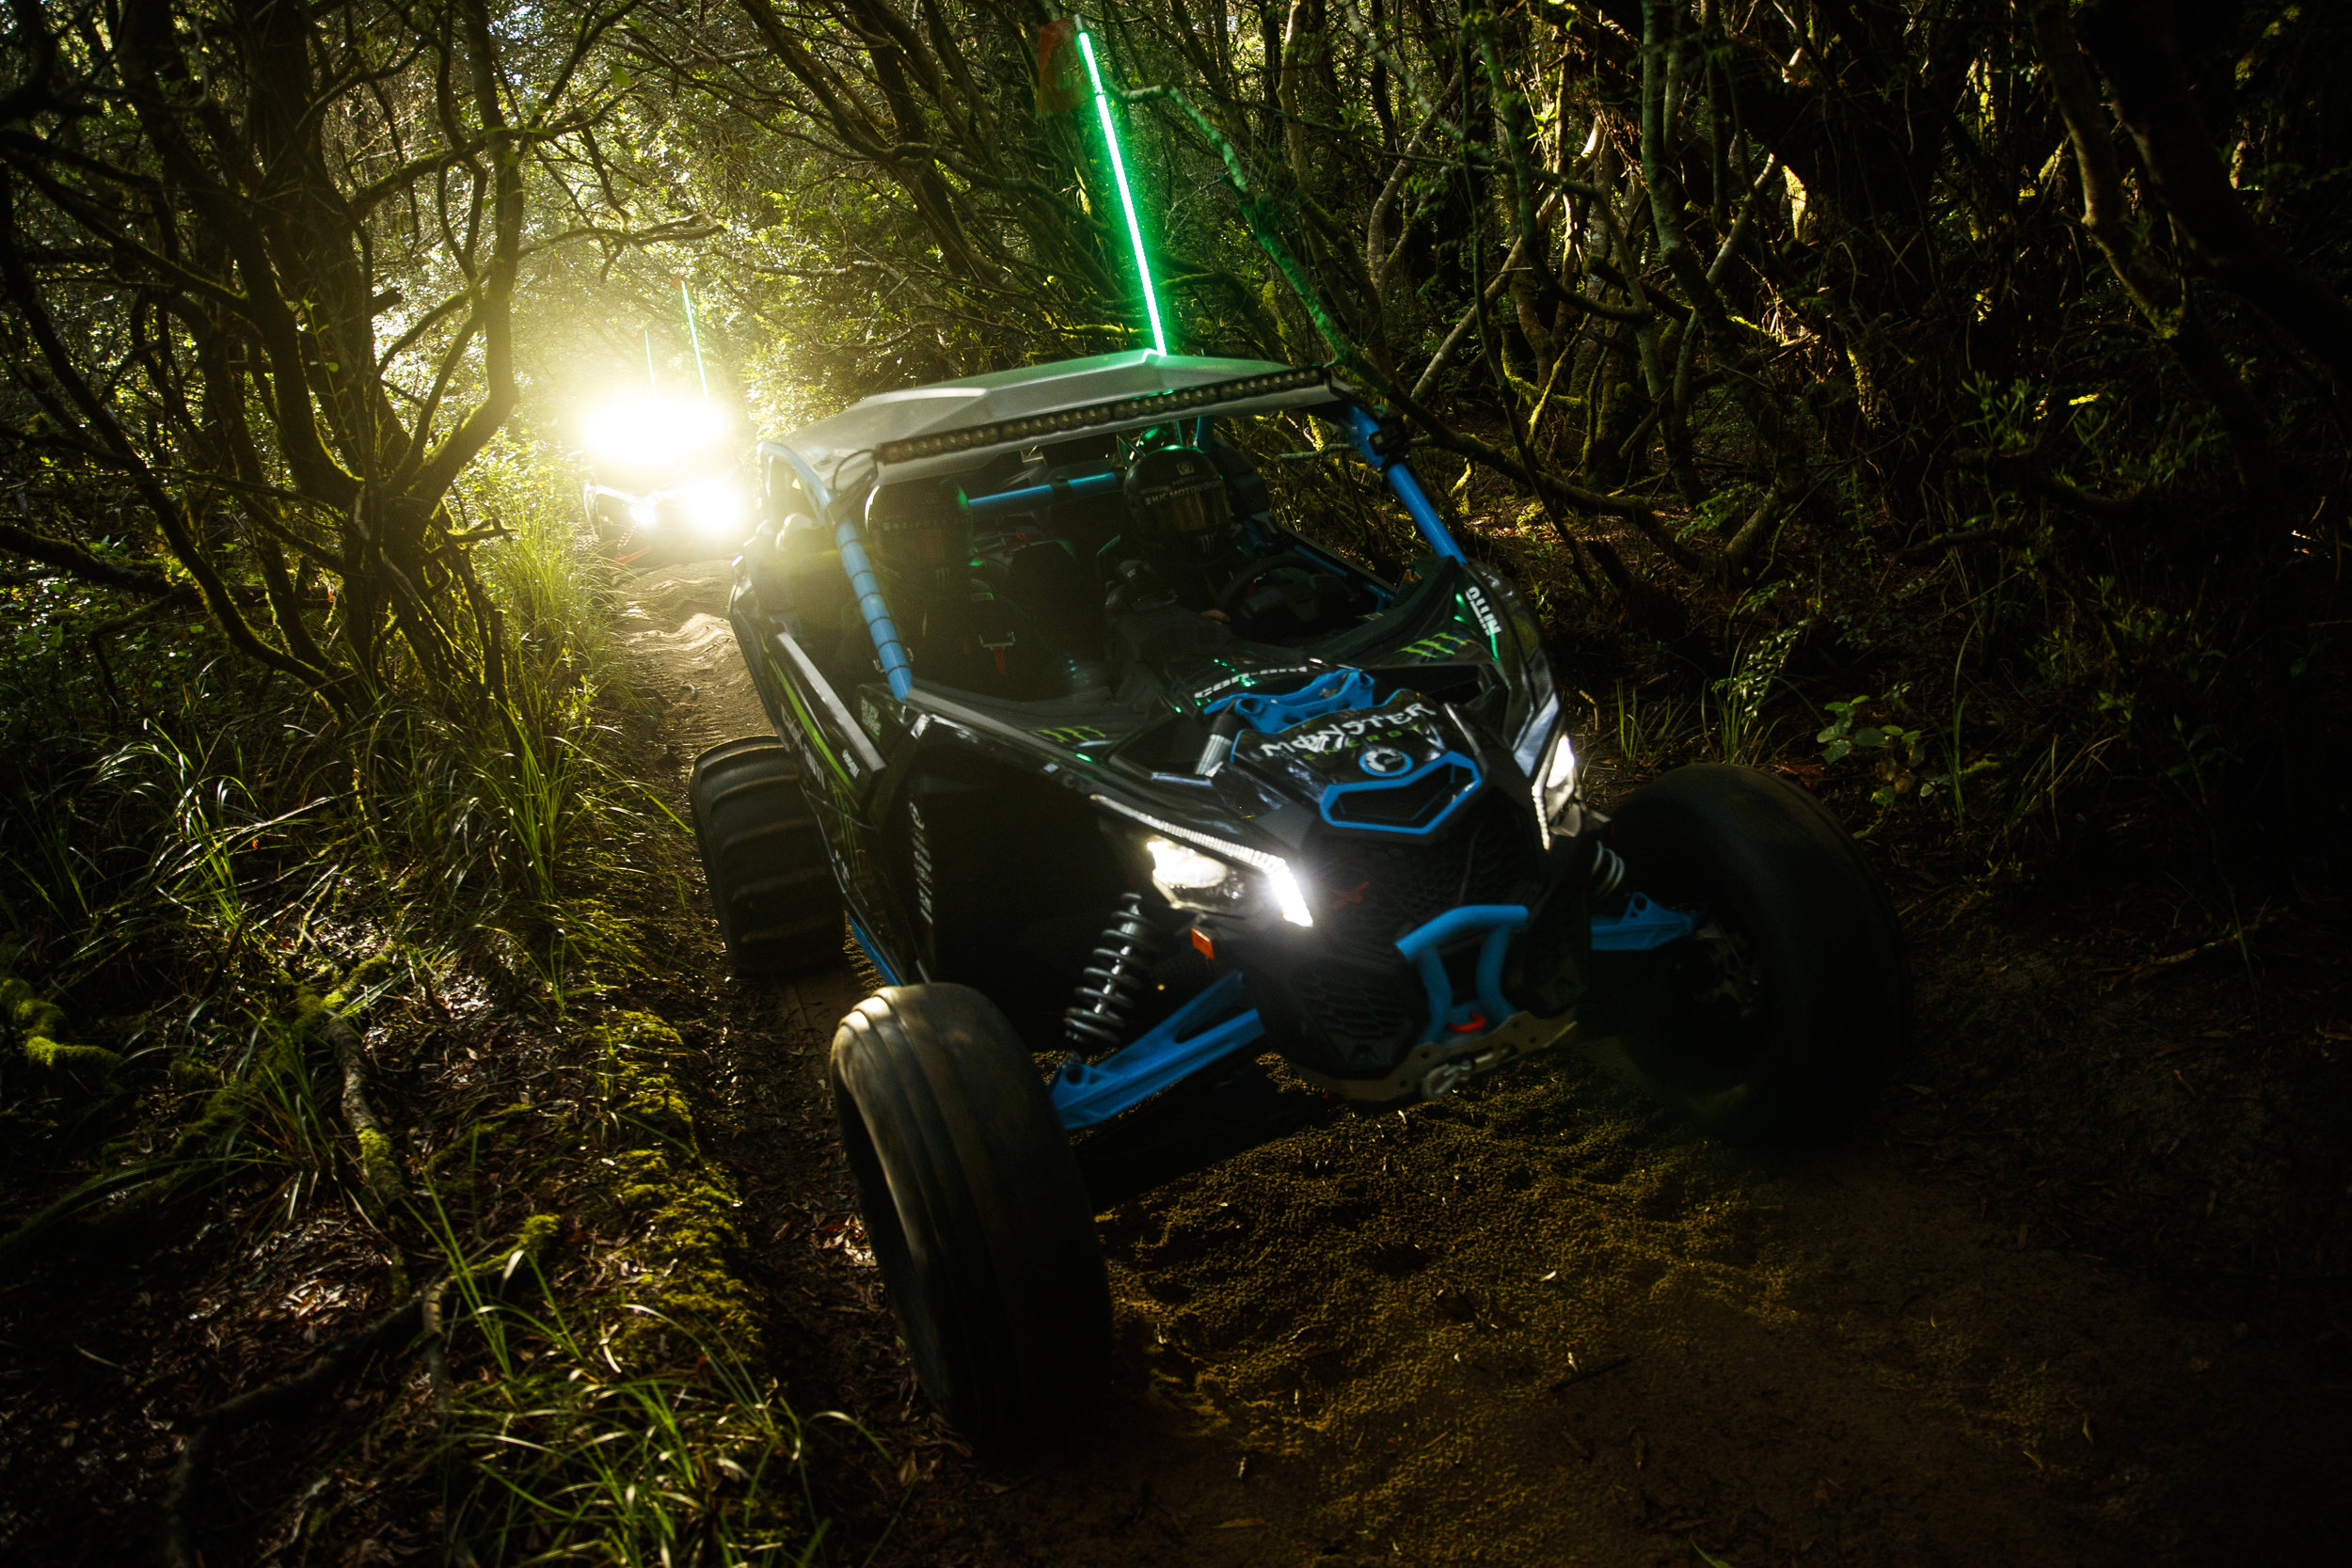 CaseyCurrie_UTVTakeover_CoosBay_Oregon_Can-Am_029.jpg